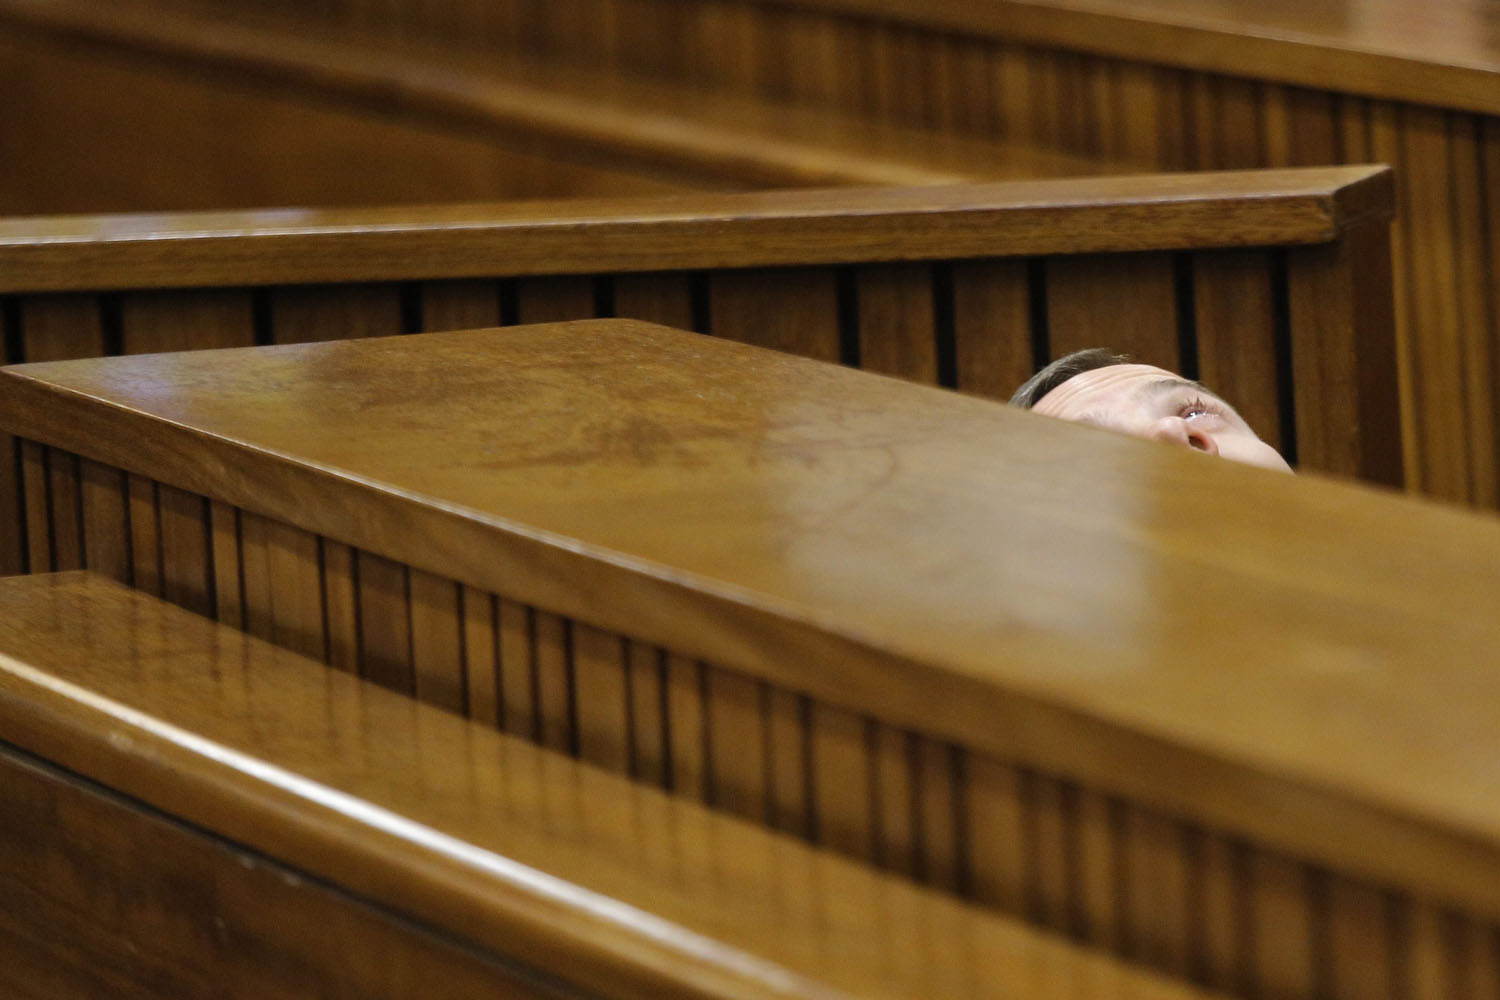 Mar. 14, 2014. African Paralympic athlete Oscar Pistorius is seen leaning back after applying eye drops as he prepares himself for another day in the dock during his ongoing murder trial in Pretoria, South Africa,